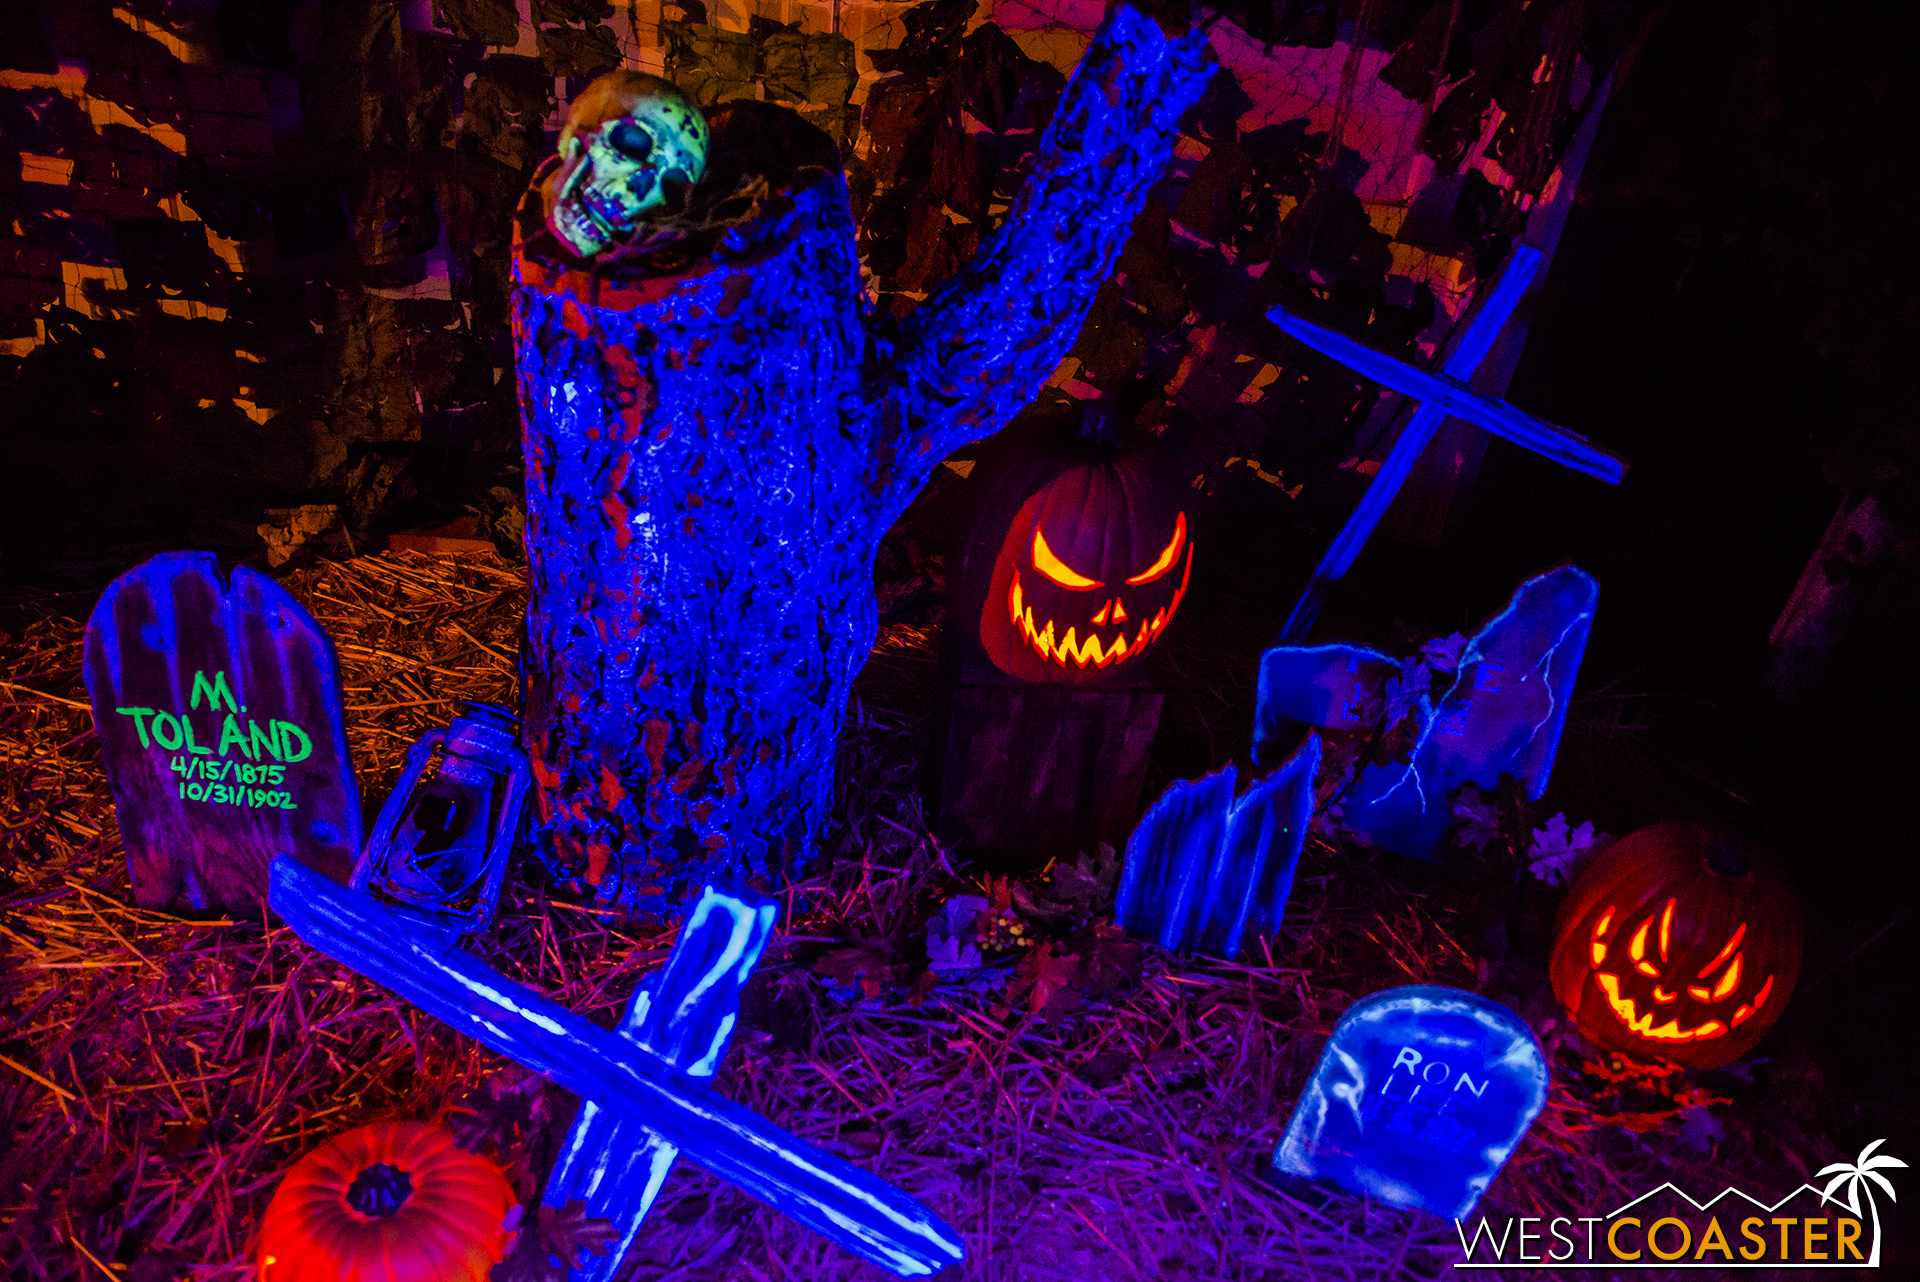 The graves and jack-o-lanterns look glorious in the show lighting.